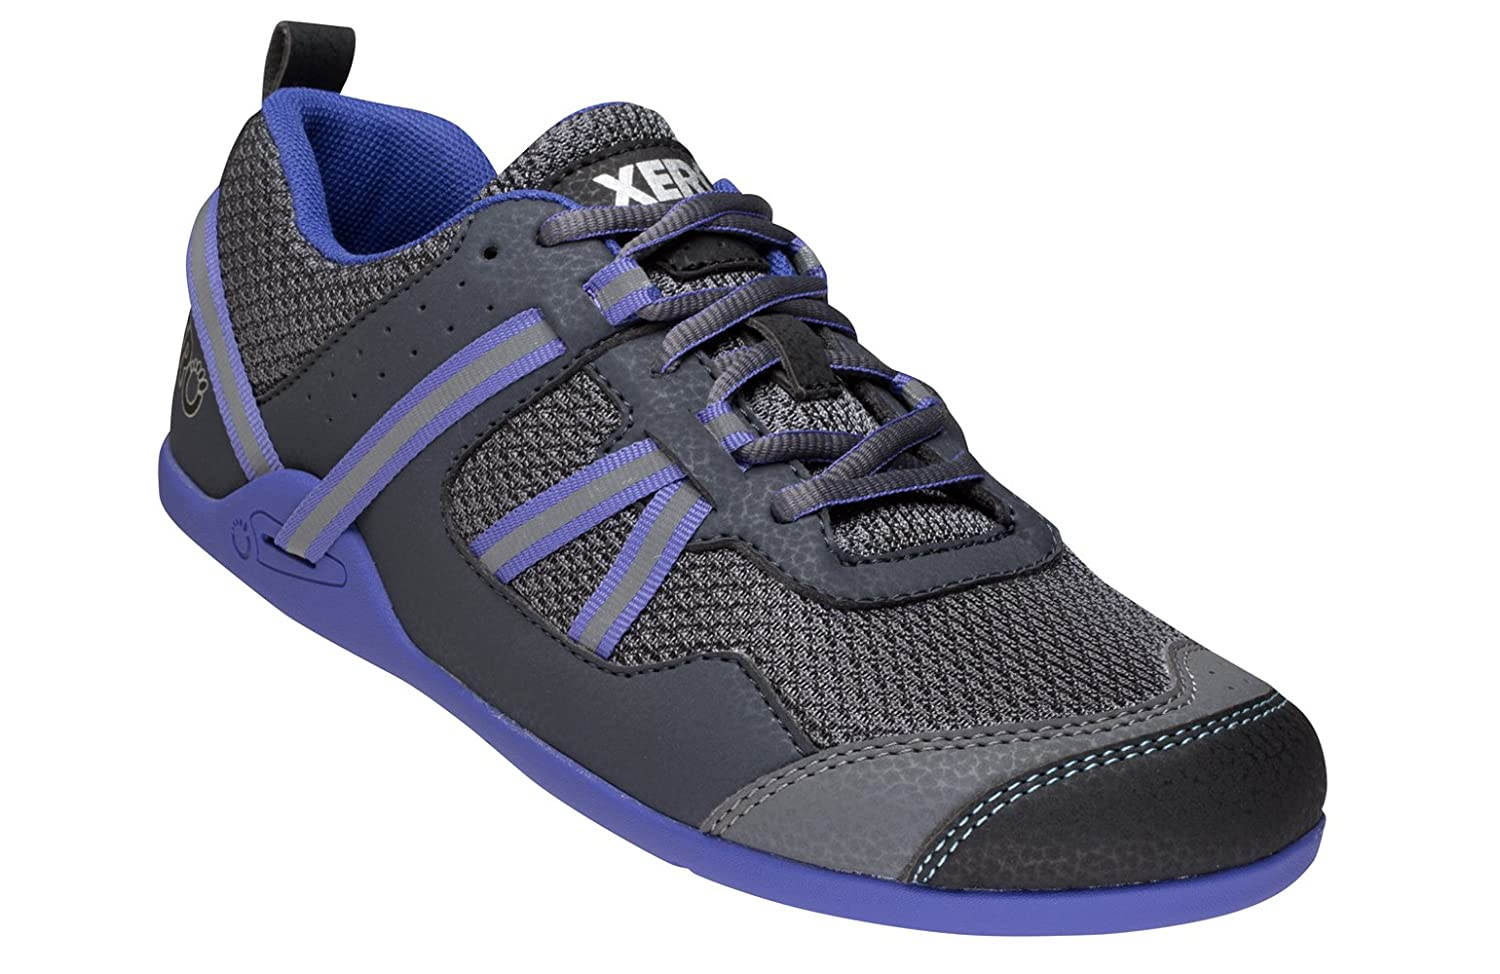 Xero Shoes Prio - Minimalist Barefoot Trail and Road Running Shoe - Fitness, Athletic Zero Drop Sneaker - Women's B07583LRB8 9 B(M) US|Lilac